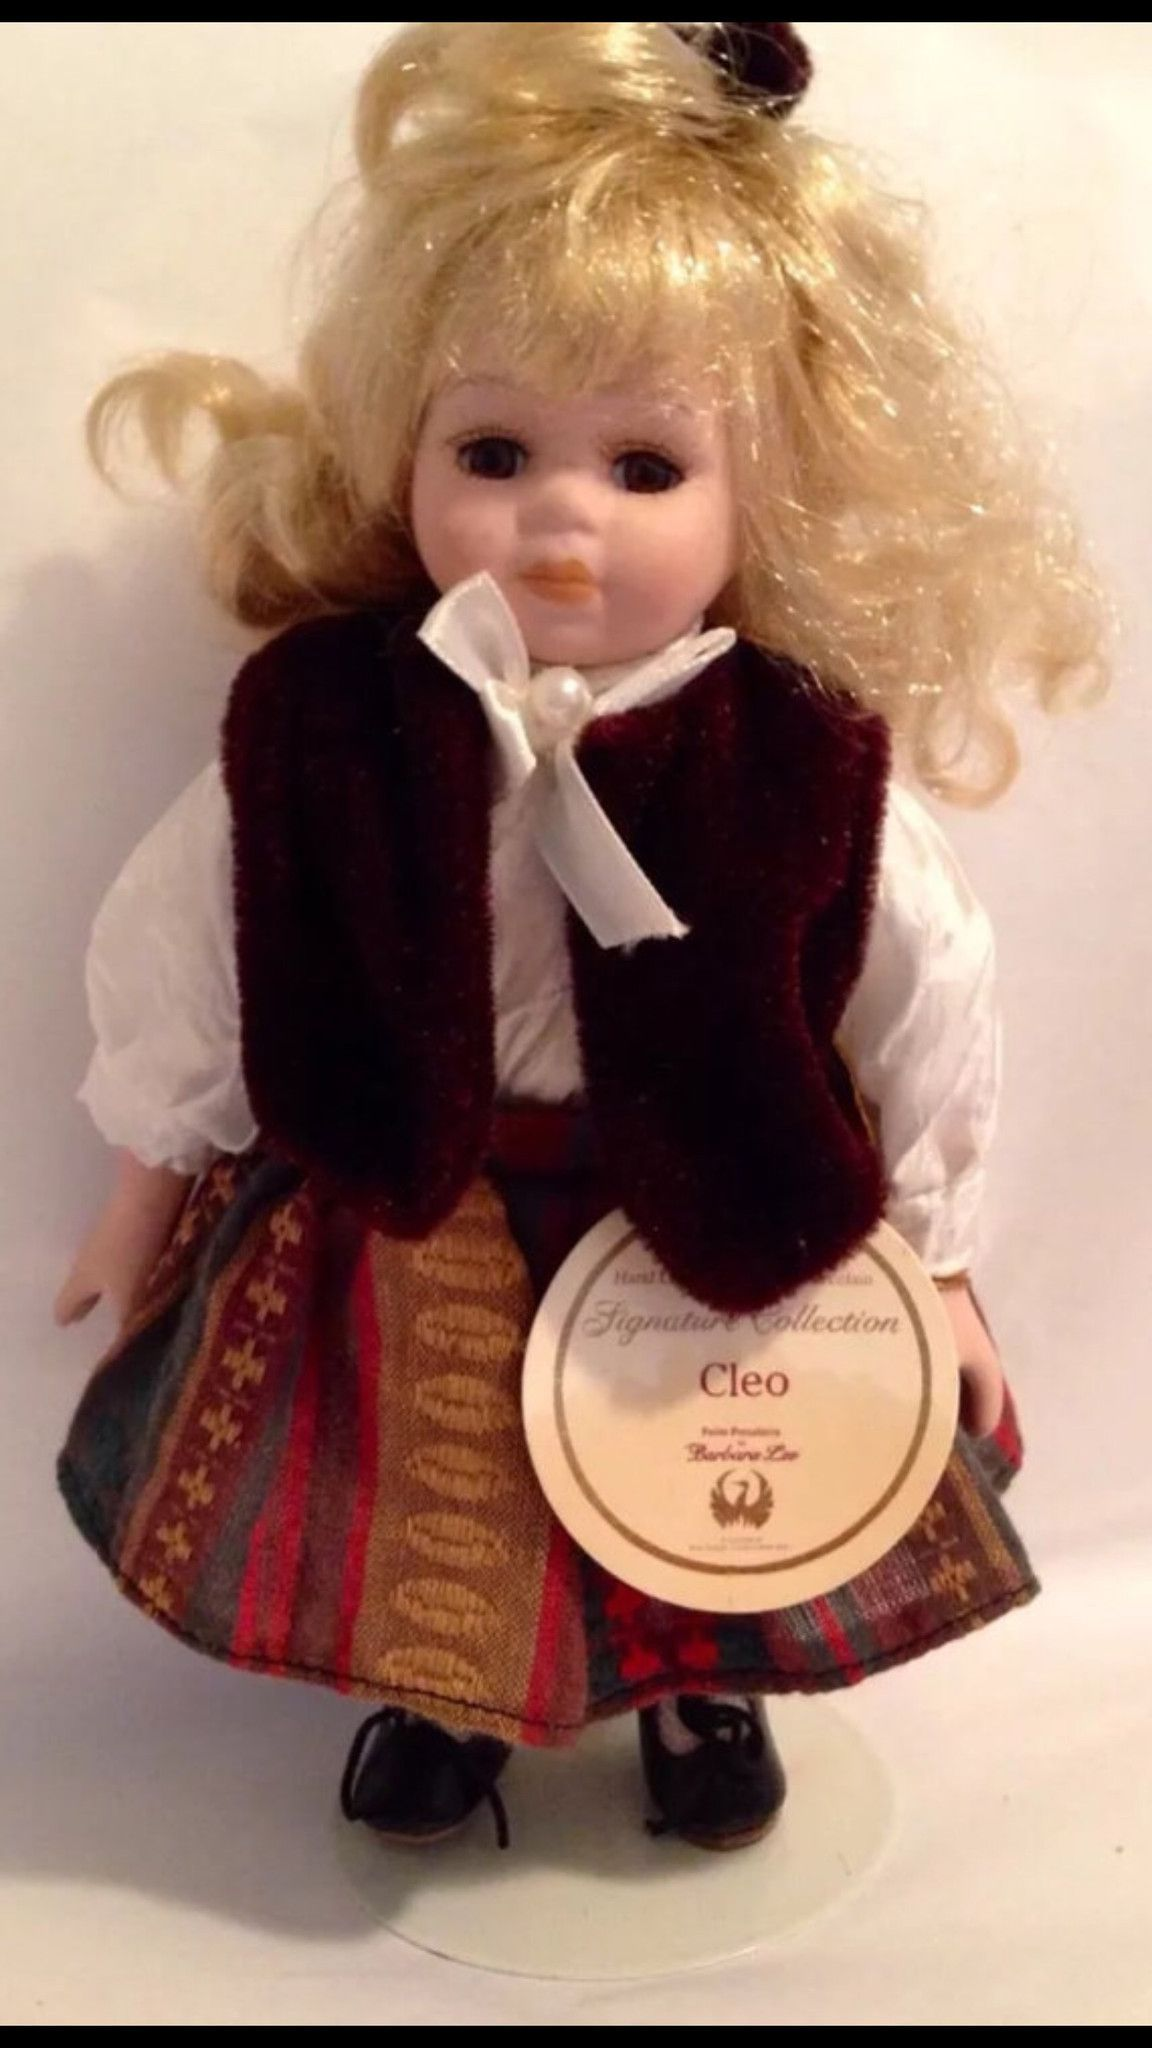 Vintage Collectible Petite Porcelain Doll By Barbara Lee Signature Hair Styling Spray 450 Ml Collection Limited Edition Cleo